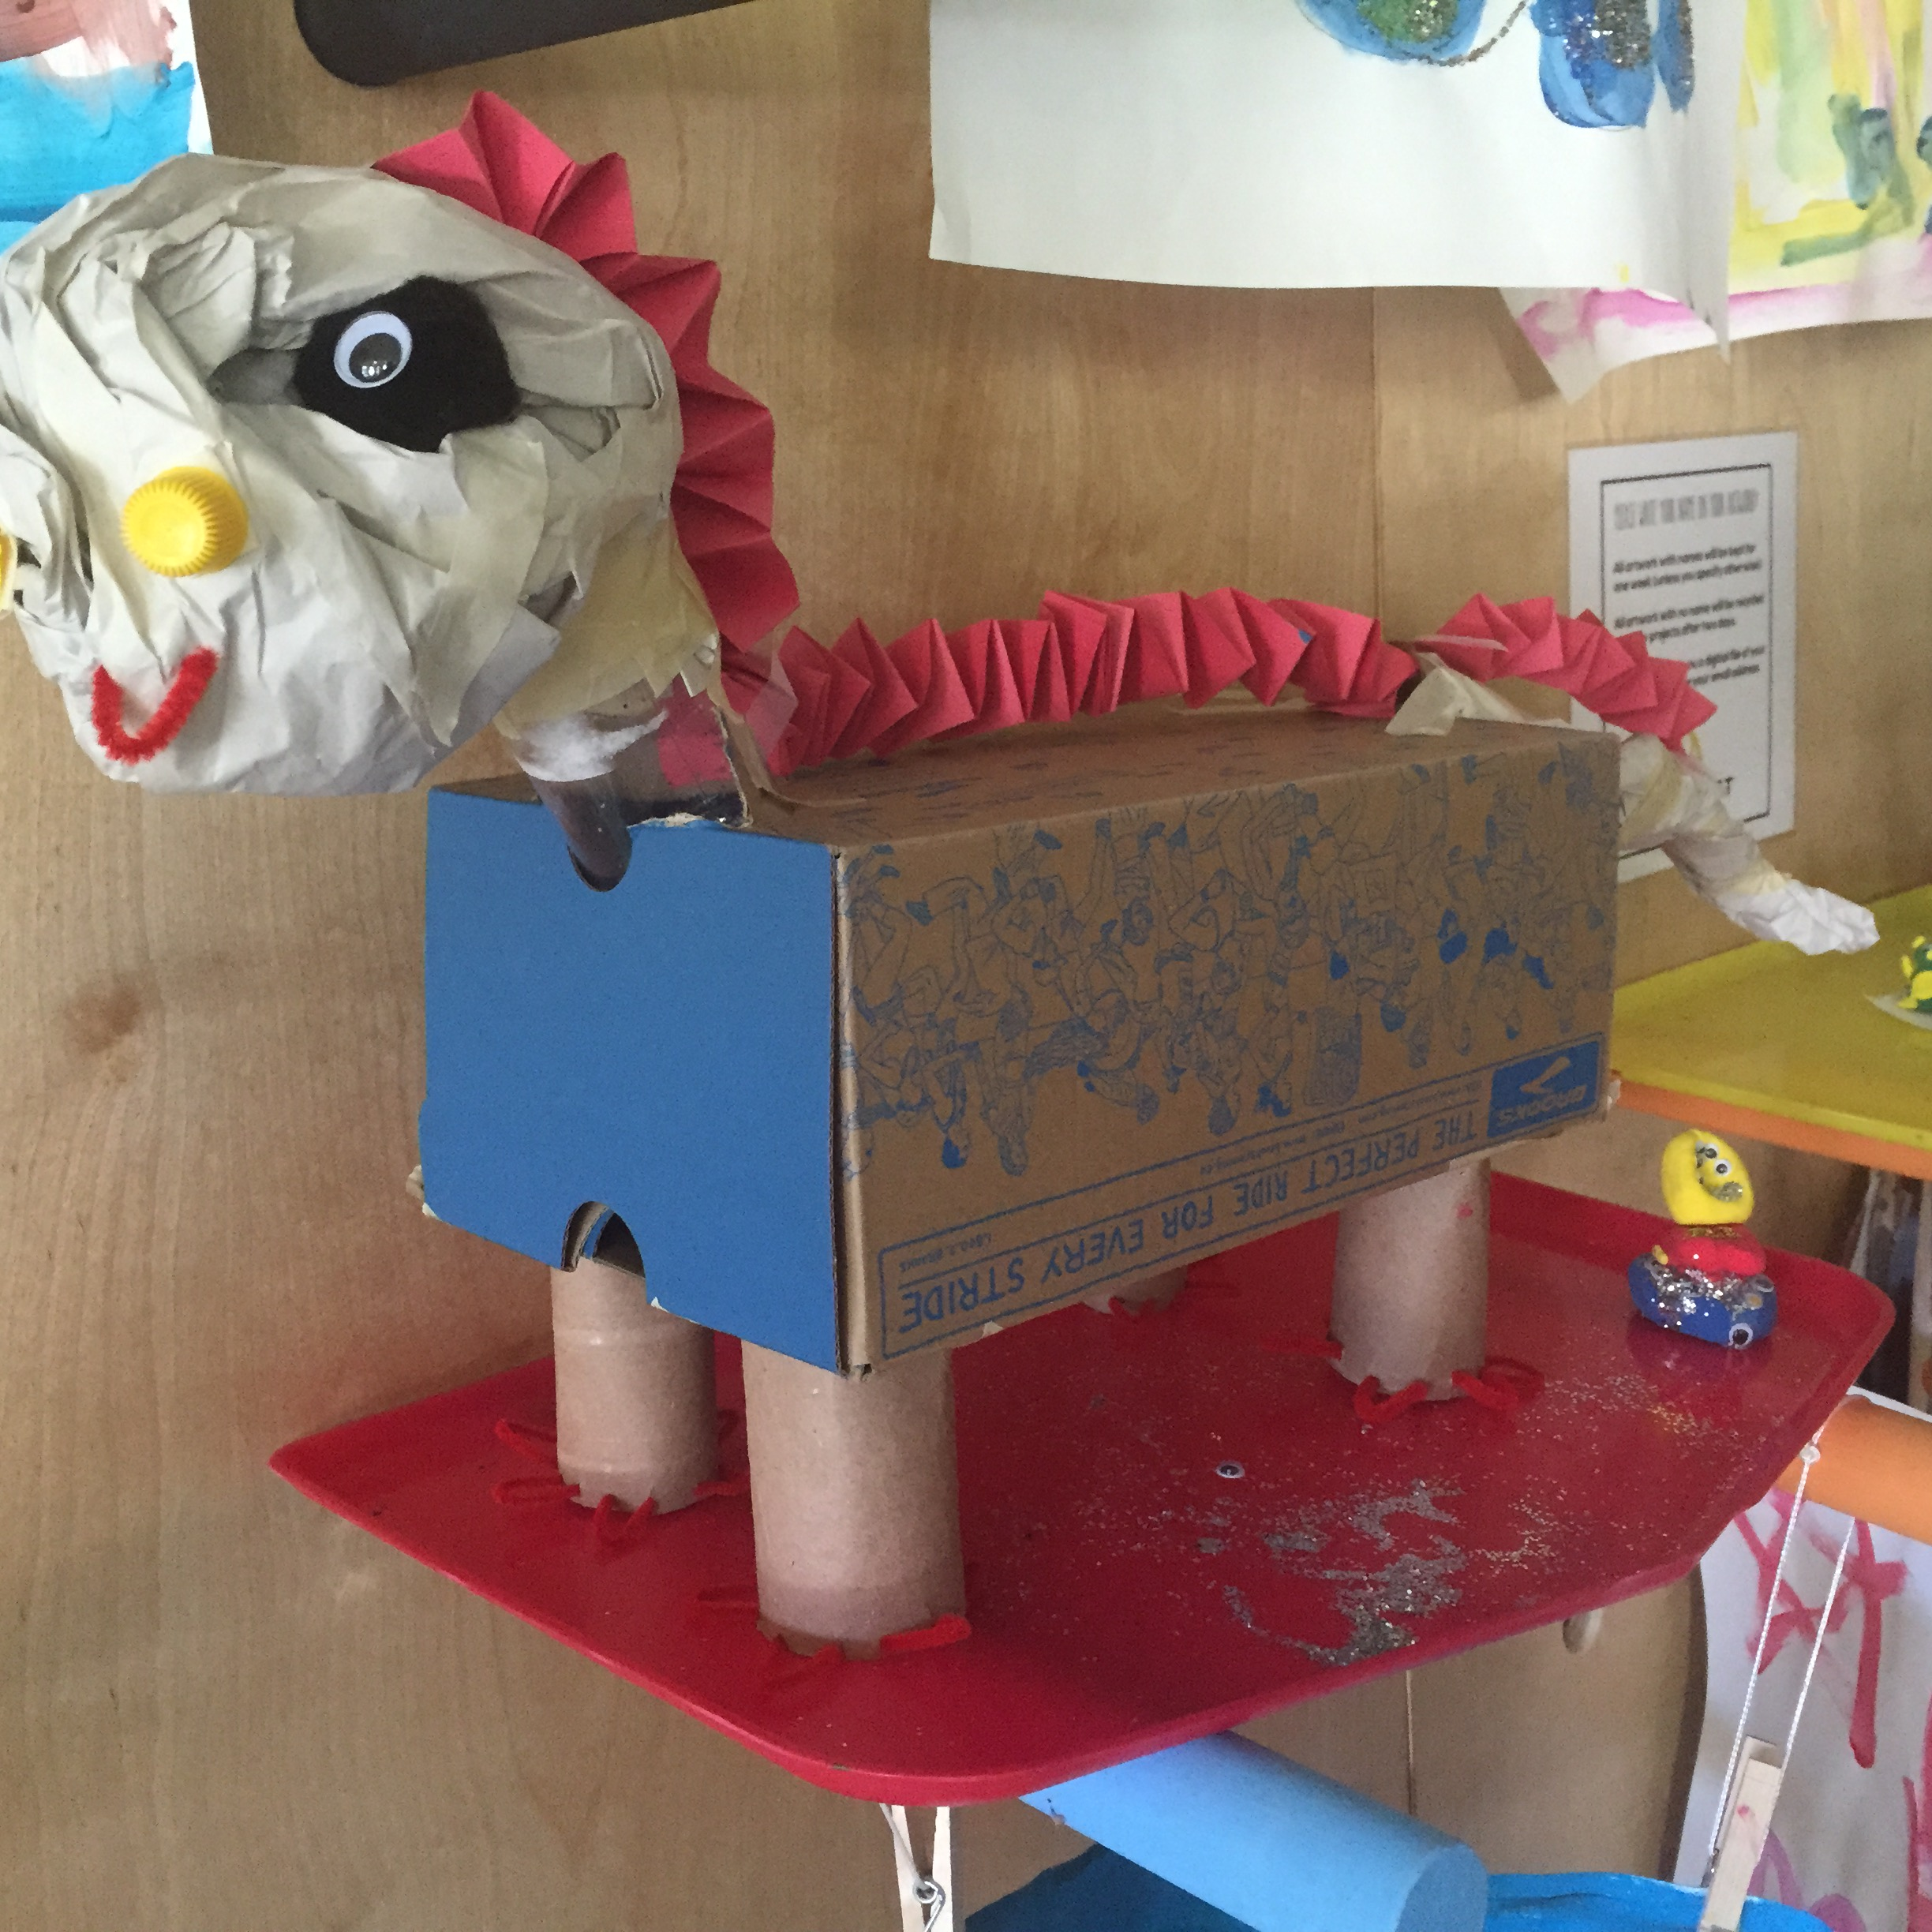 Sunday, May 27 - Recycled Materials Sunday3:00 pm - 5:00 pmCome build with recycled materials! Our big